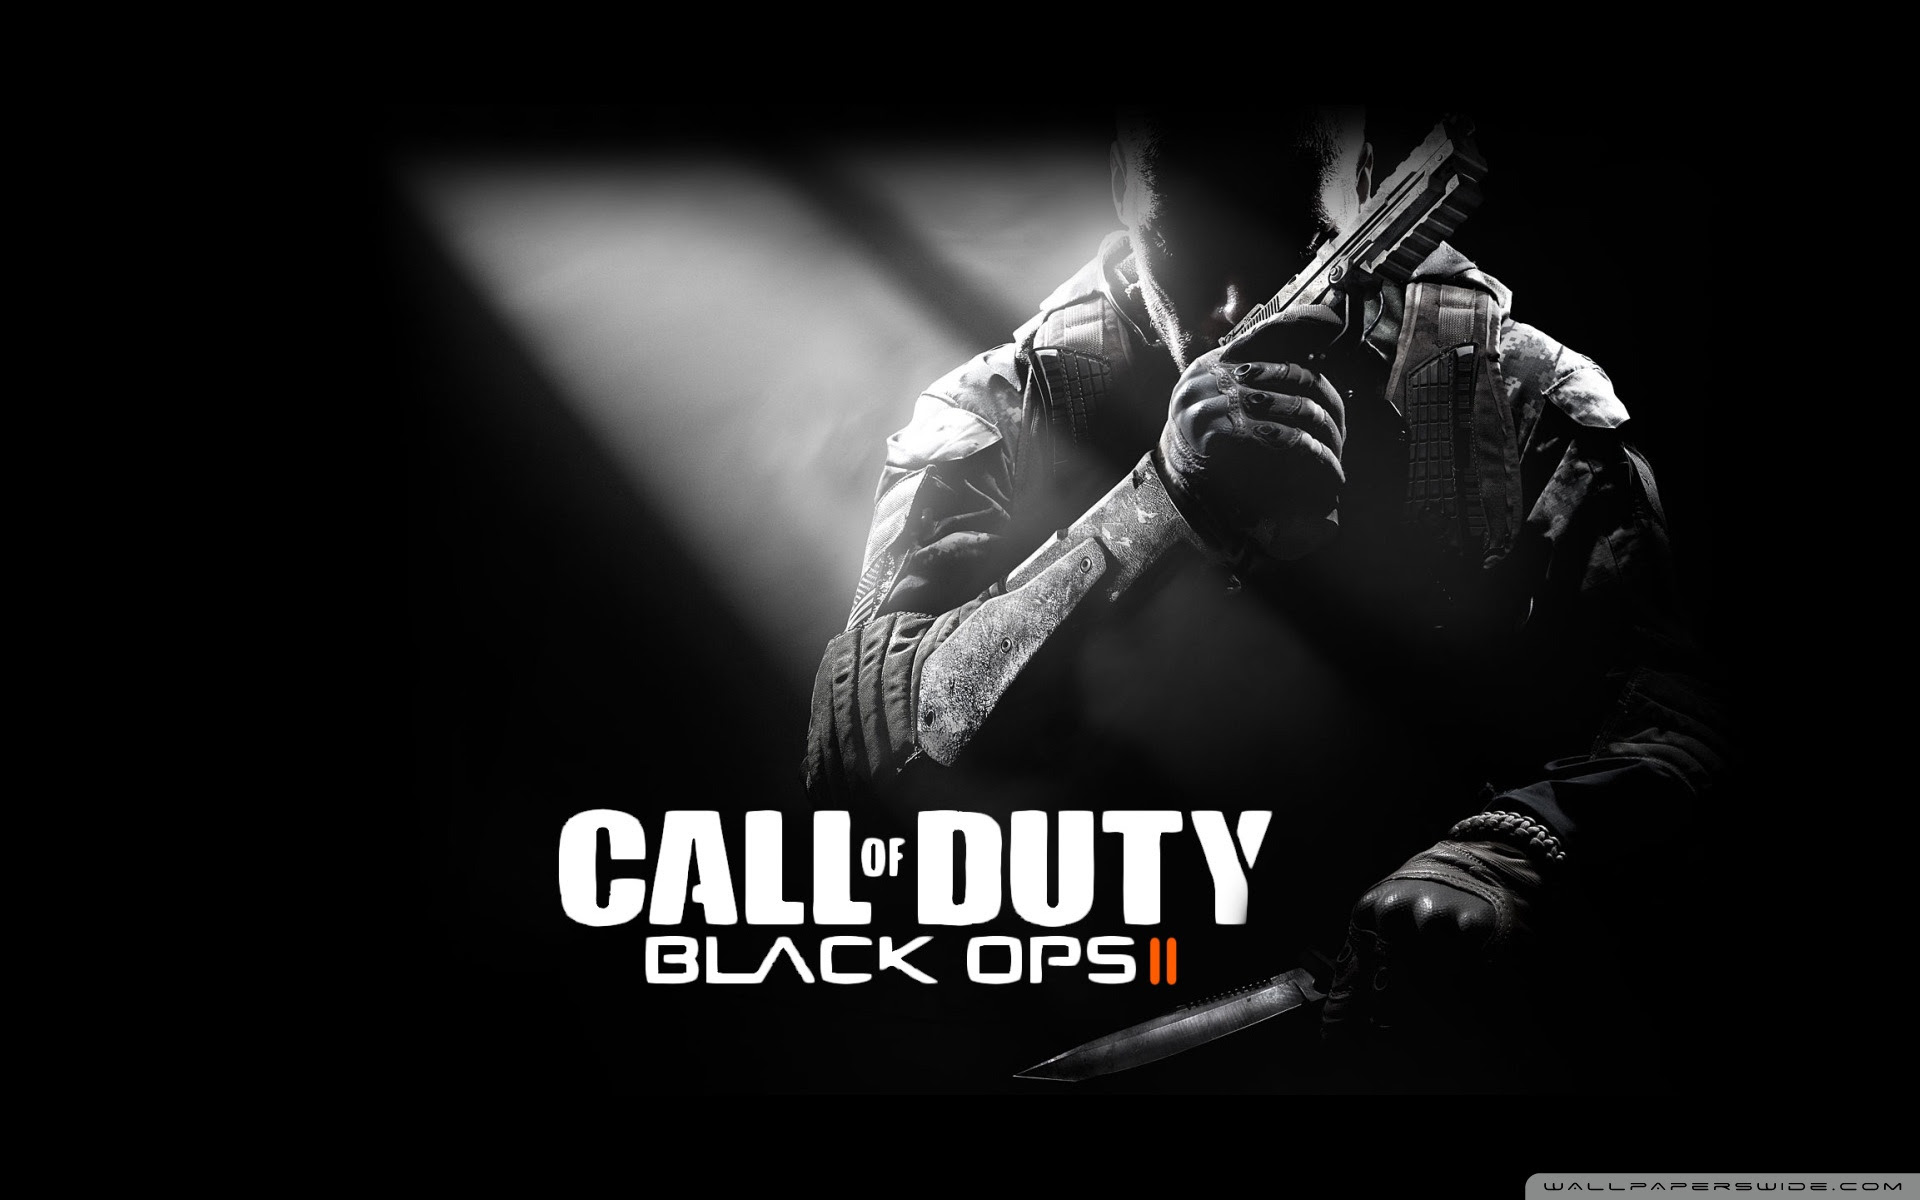 Wallpaperswide Com Call Of Duty Ultra Hd Wallpapers For Uhd